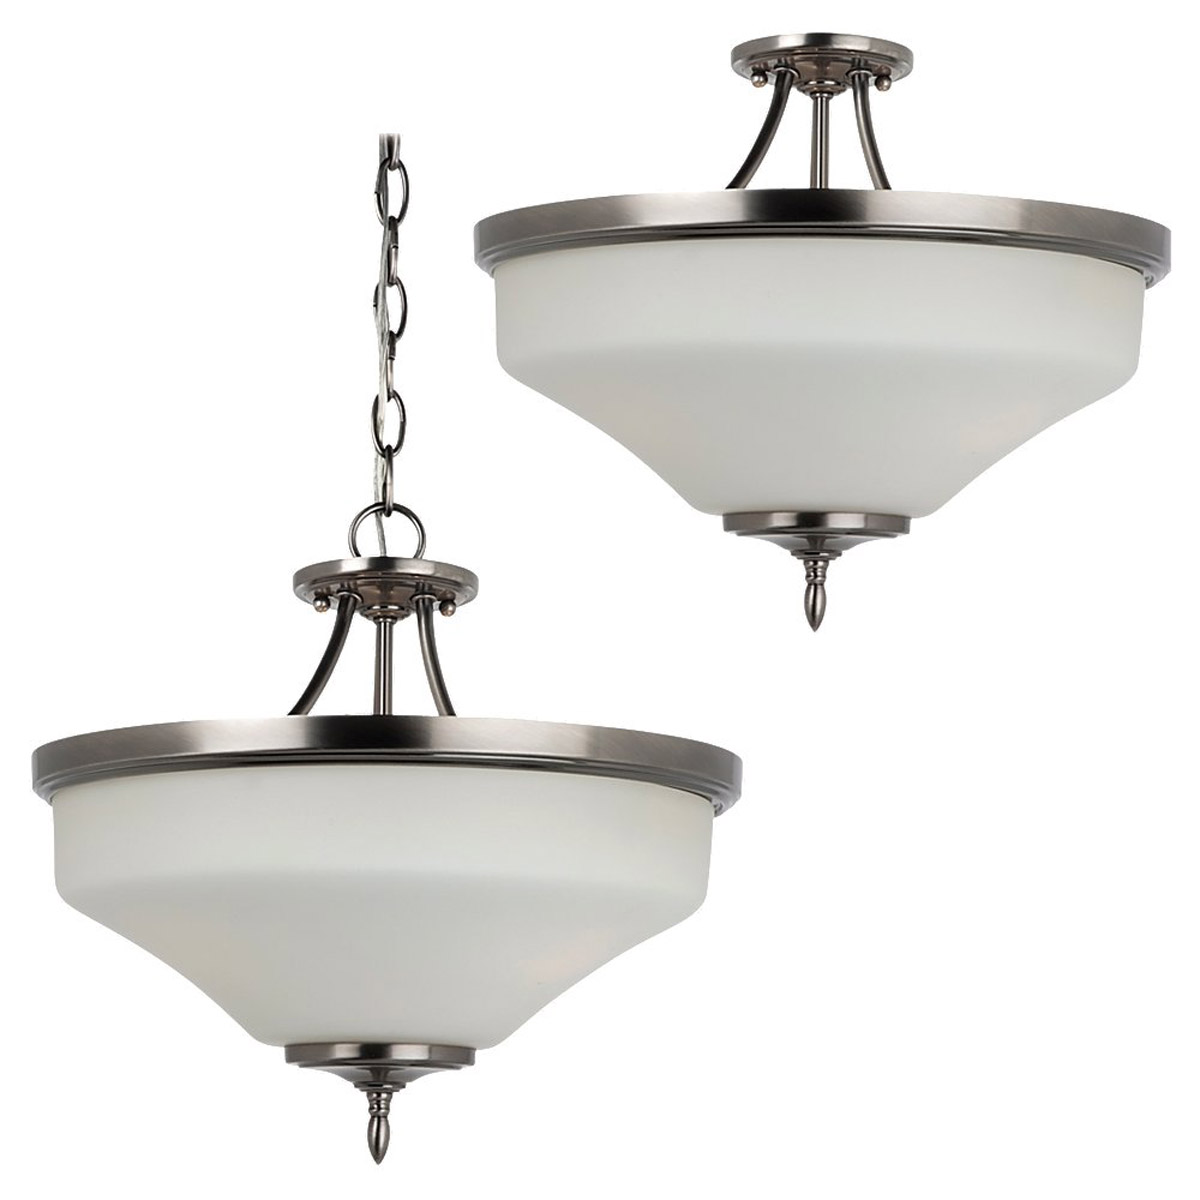 Sea Gull 77180BLE-965 Montreal 3 Light 15 inch Antique Brushed Nickel Semi-Flush Convertible Pendant Ceiling Light in Etched,  White Inside Glass, Fluorescent photo